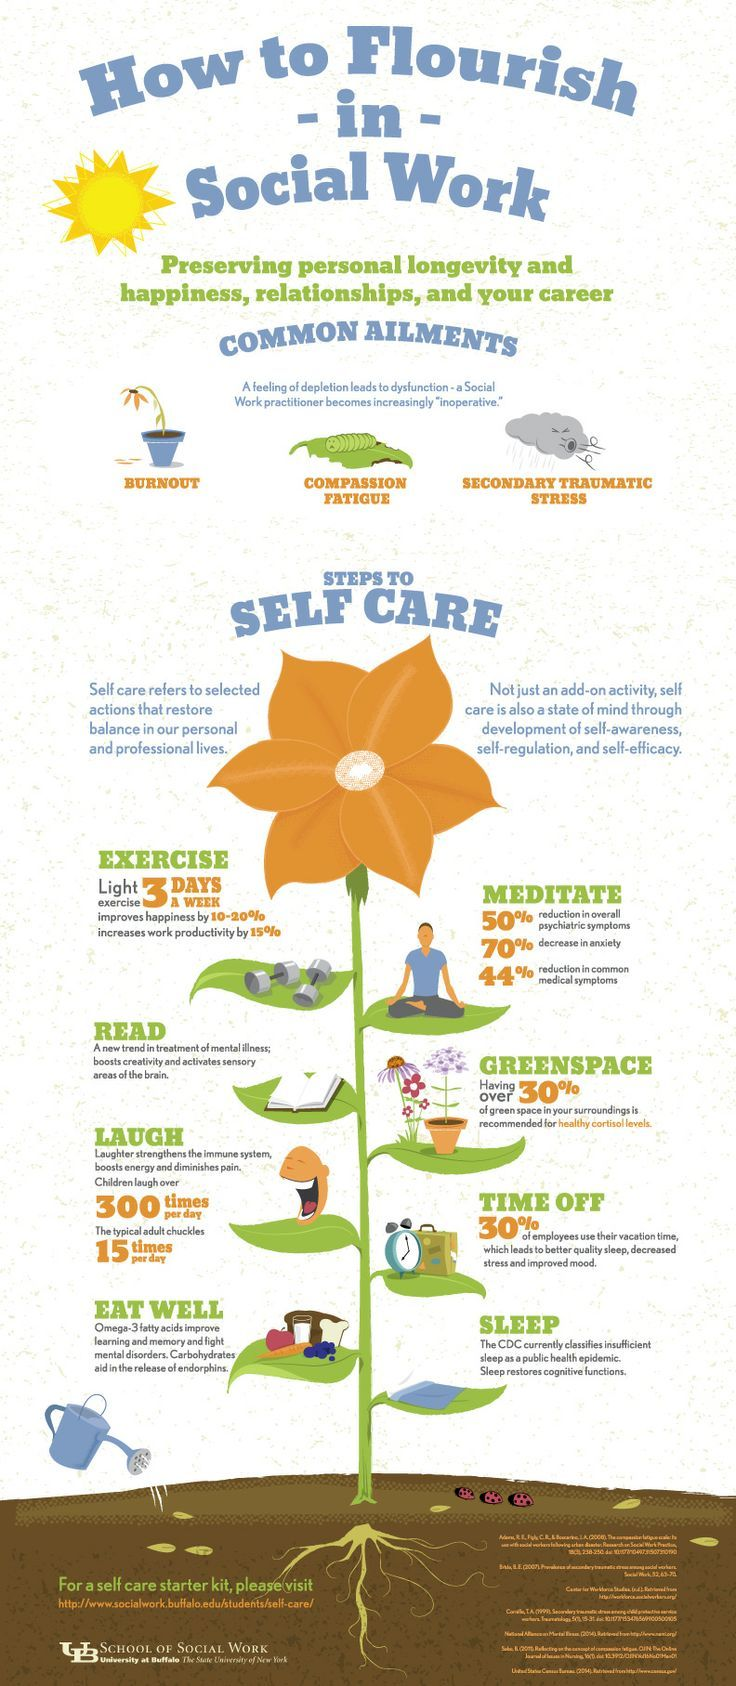 Self Care infographic from the University at Buffalo